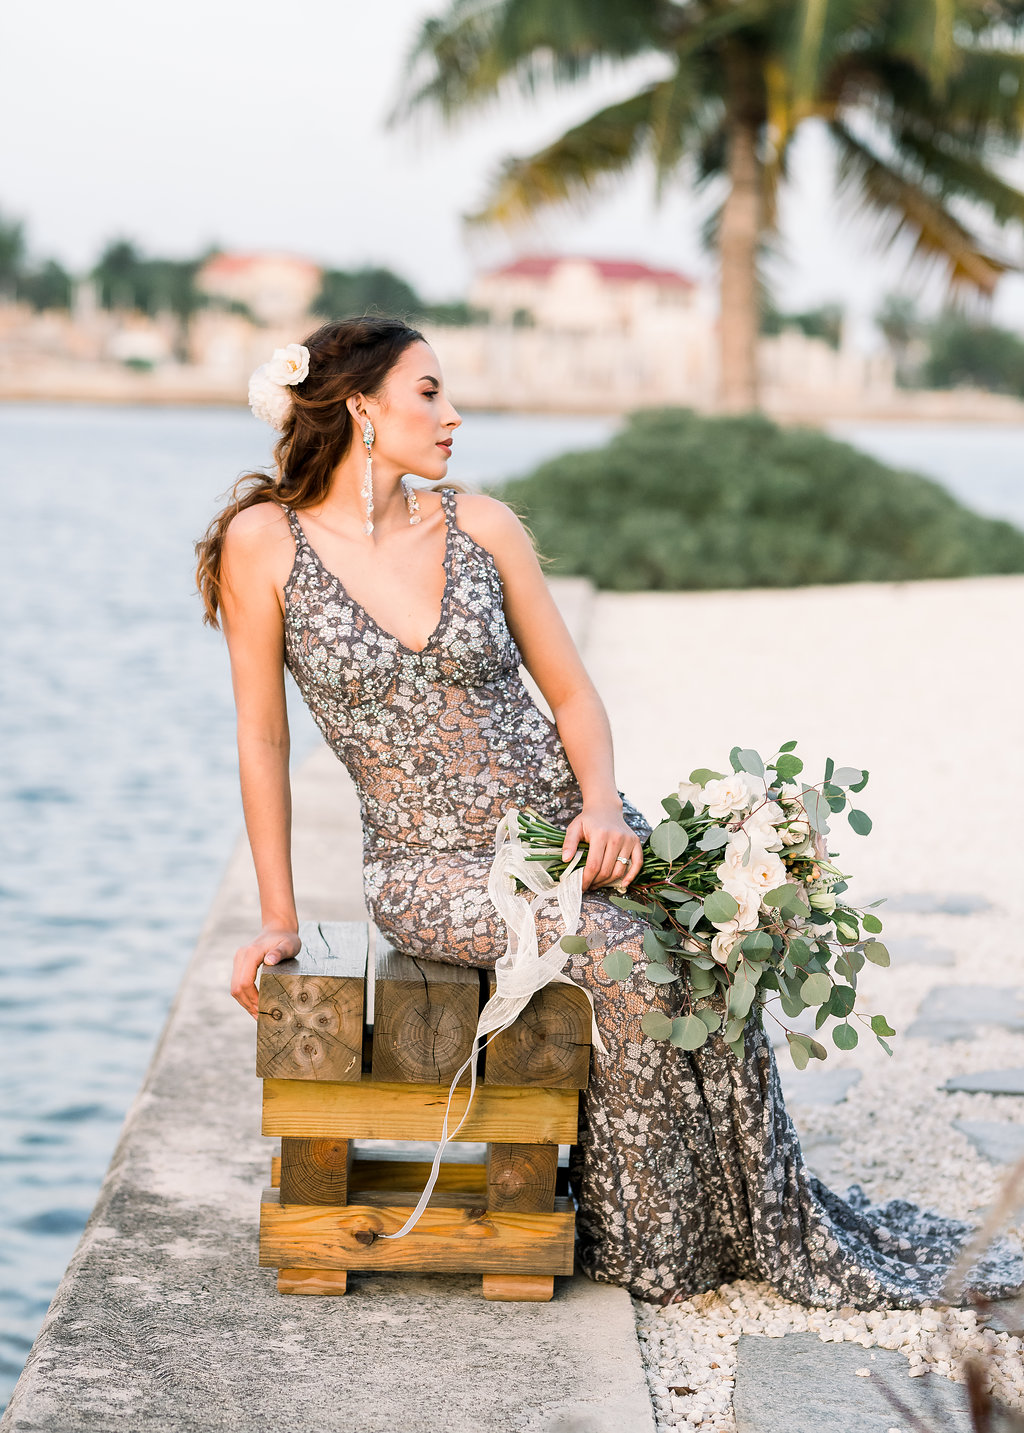 Bohemian & Romantic Wedding Inspiration from Cayman Islands, Planning & Decor by Amanda Jane . Direction Event Planning, Photography by Jenna Leigh Photography for Destination Wedding network Adriana Weddings